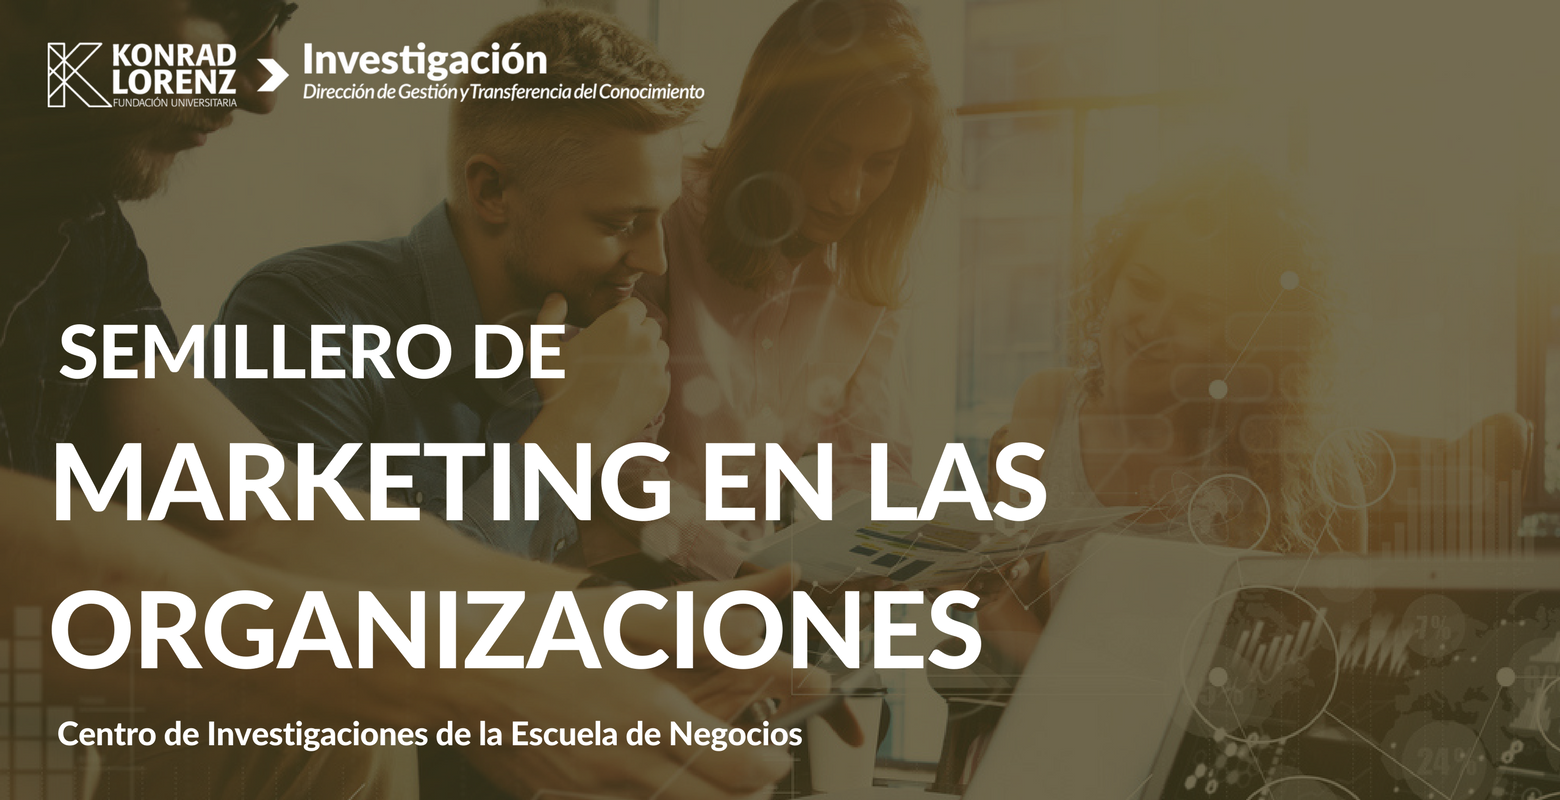 Semillero de marketing en las organizaciones